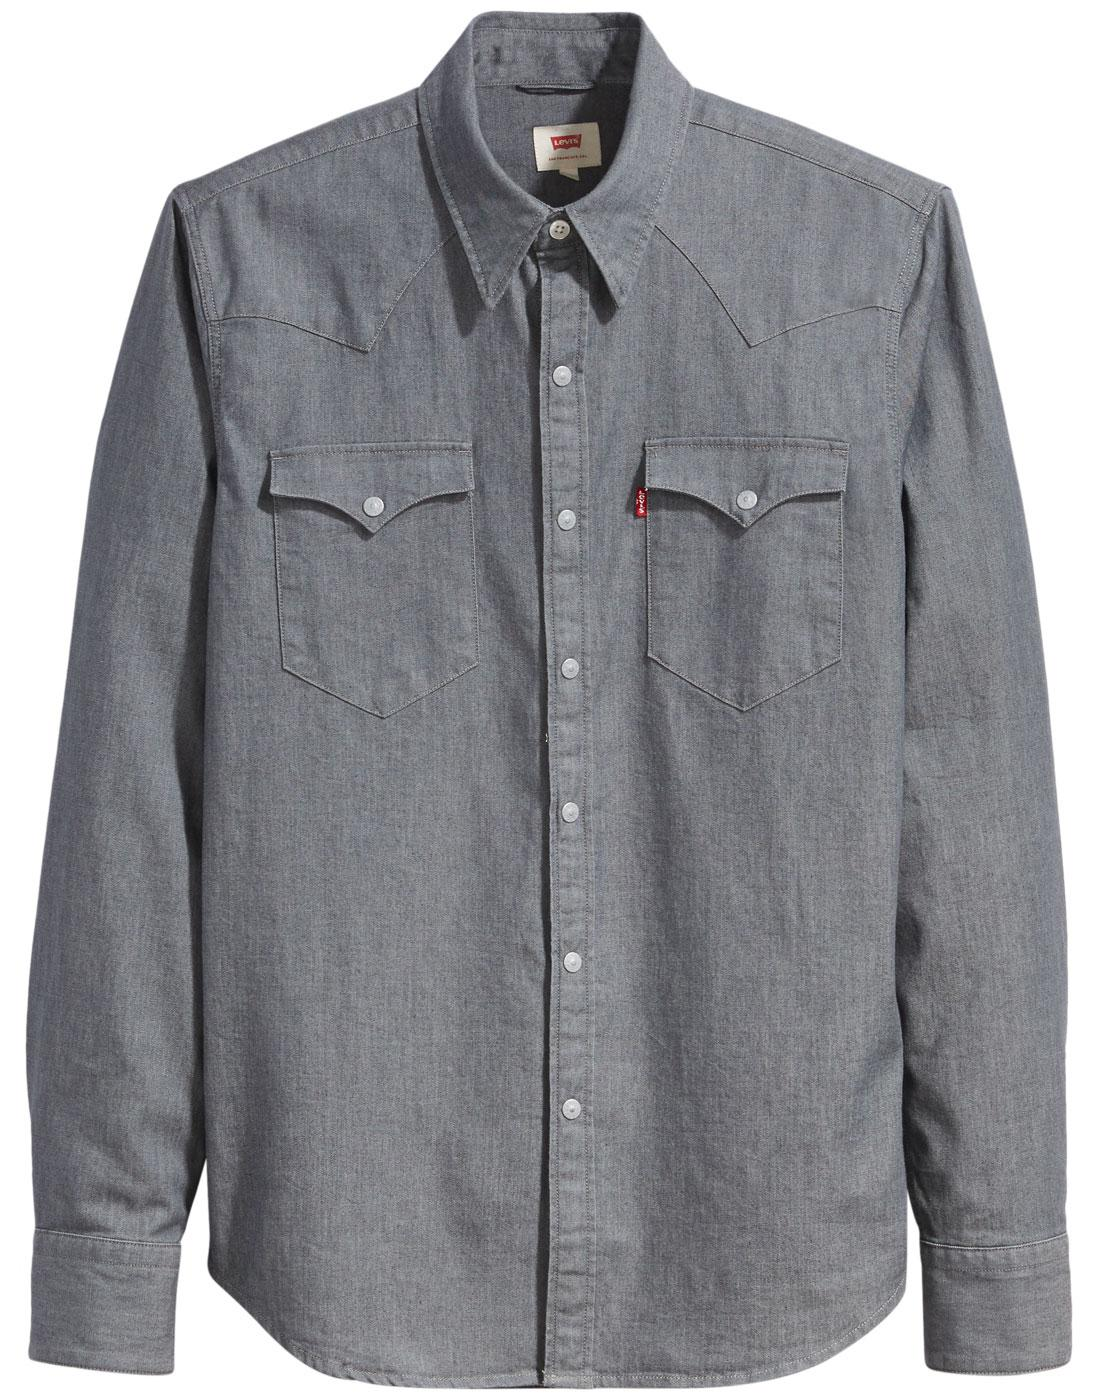 d6541c1fe2 LEVI S Barstow Retro Denim Western Shirt Grey Stretch Rinse